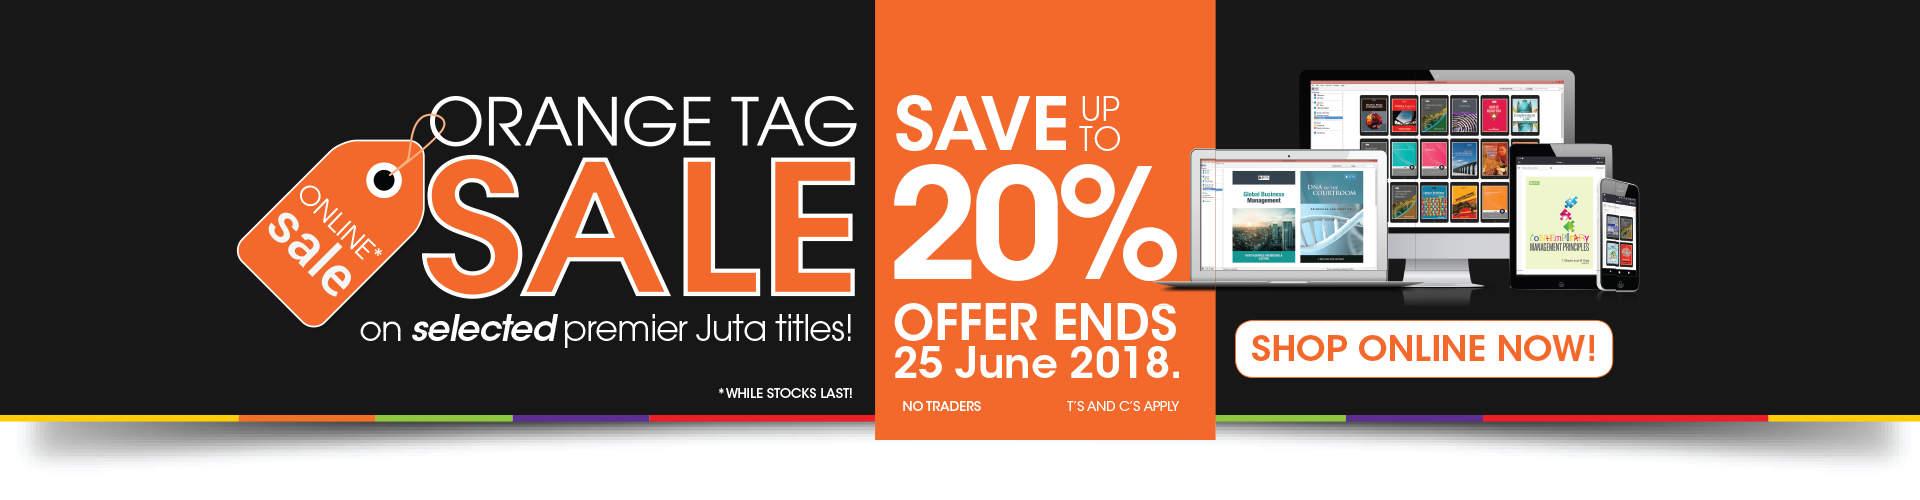 Juta law orange tag sale save up to 20 on selected premier titles offer ends fandeluxe Gallery